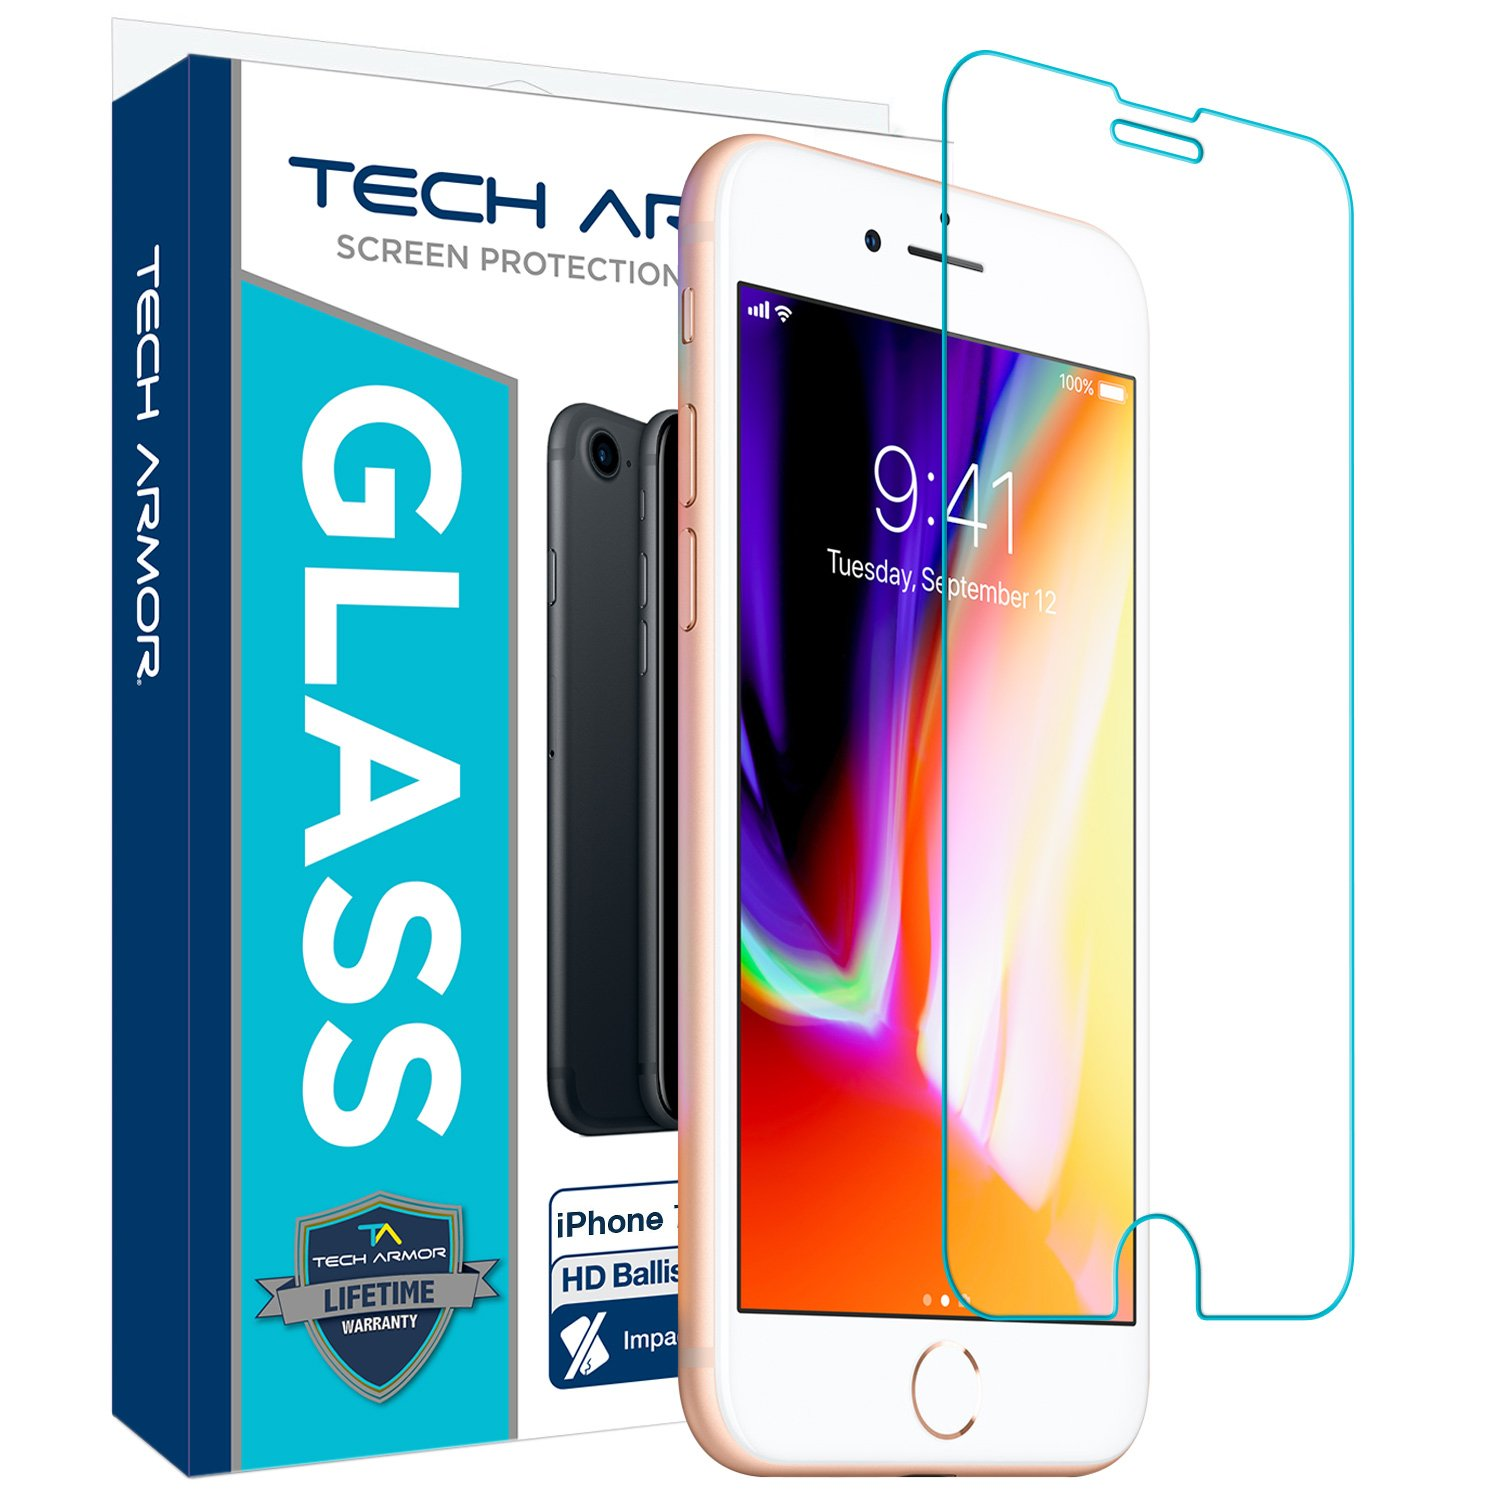 Tech Armor Apple iPhone 6 Plus  Amazon.co.uk  Electronics 2357d9c840b81